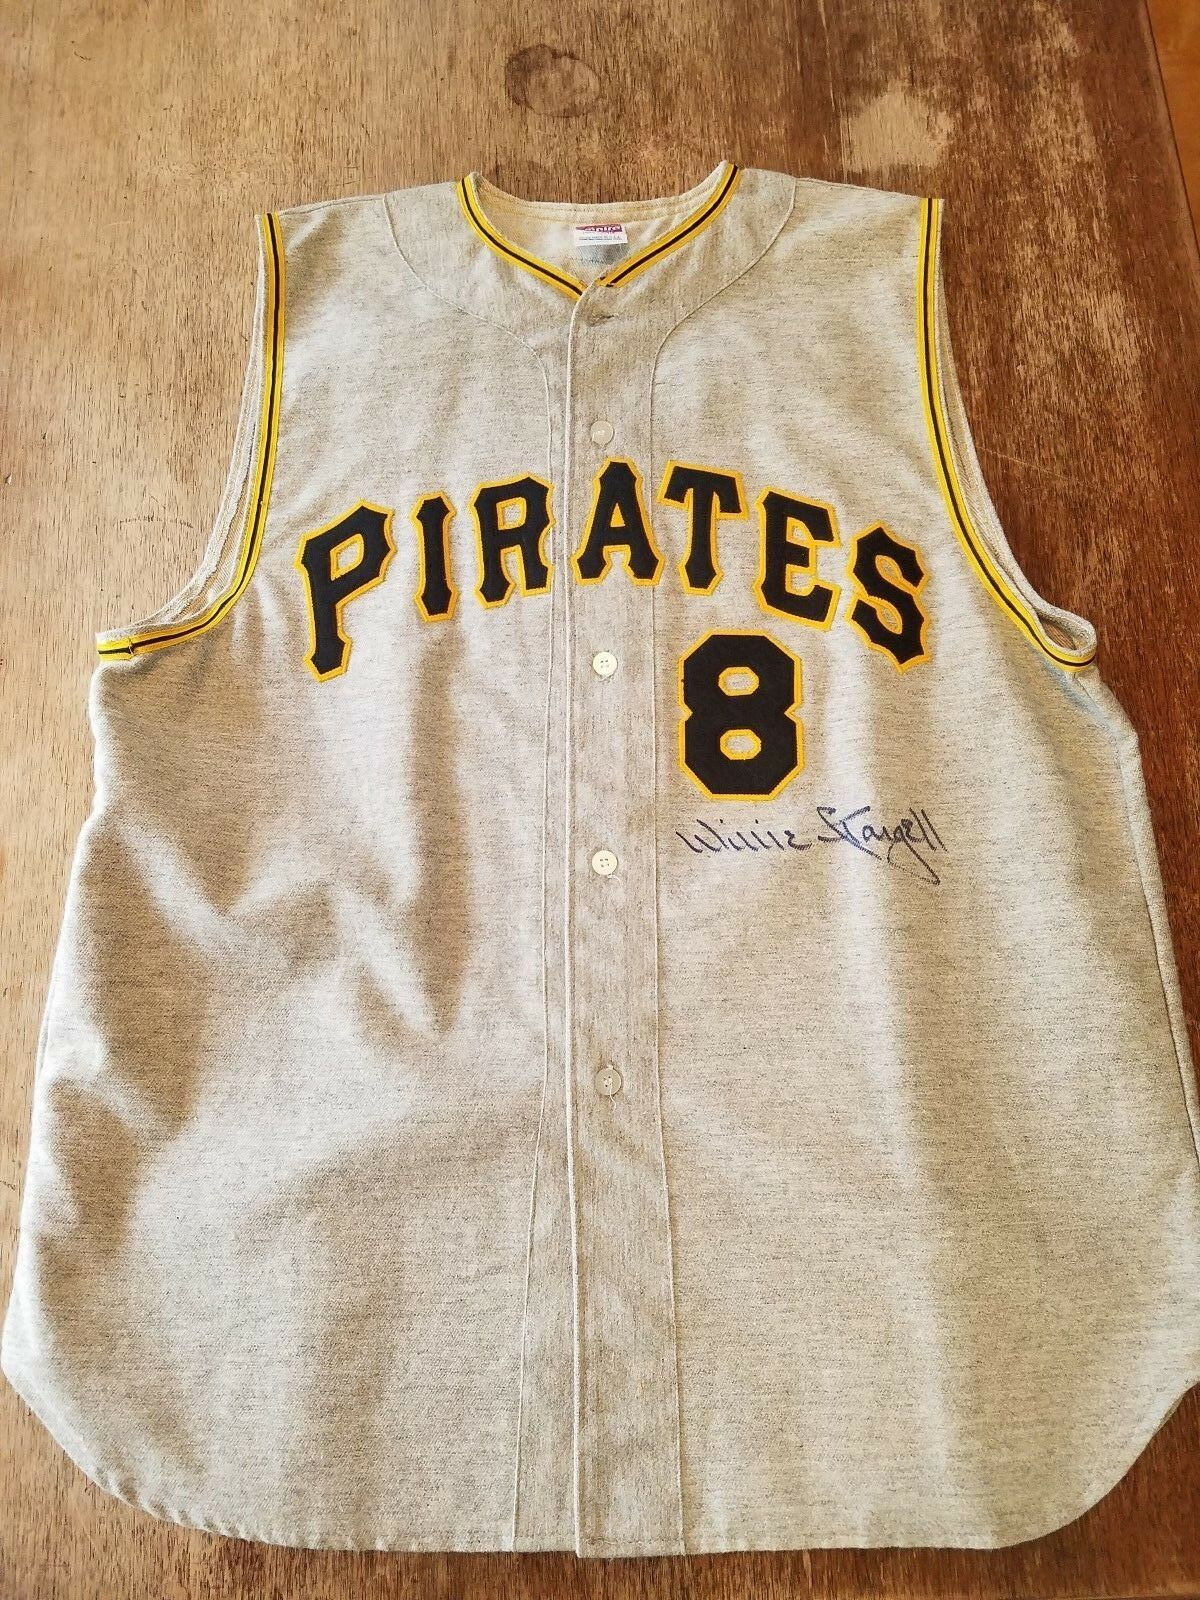 1971 Willie Stargell Pittsburgh Pirates Autographed Jersey Vest HOF COA DECEASED